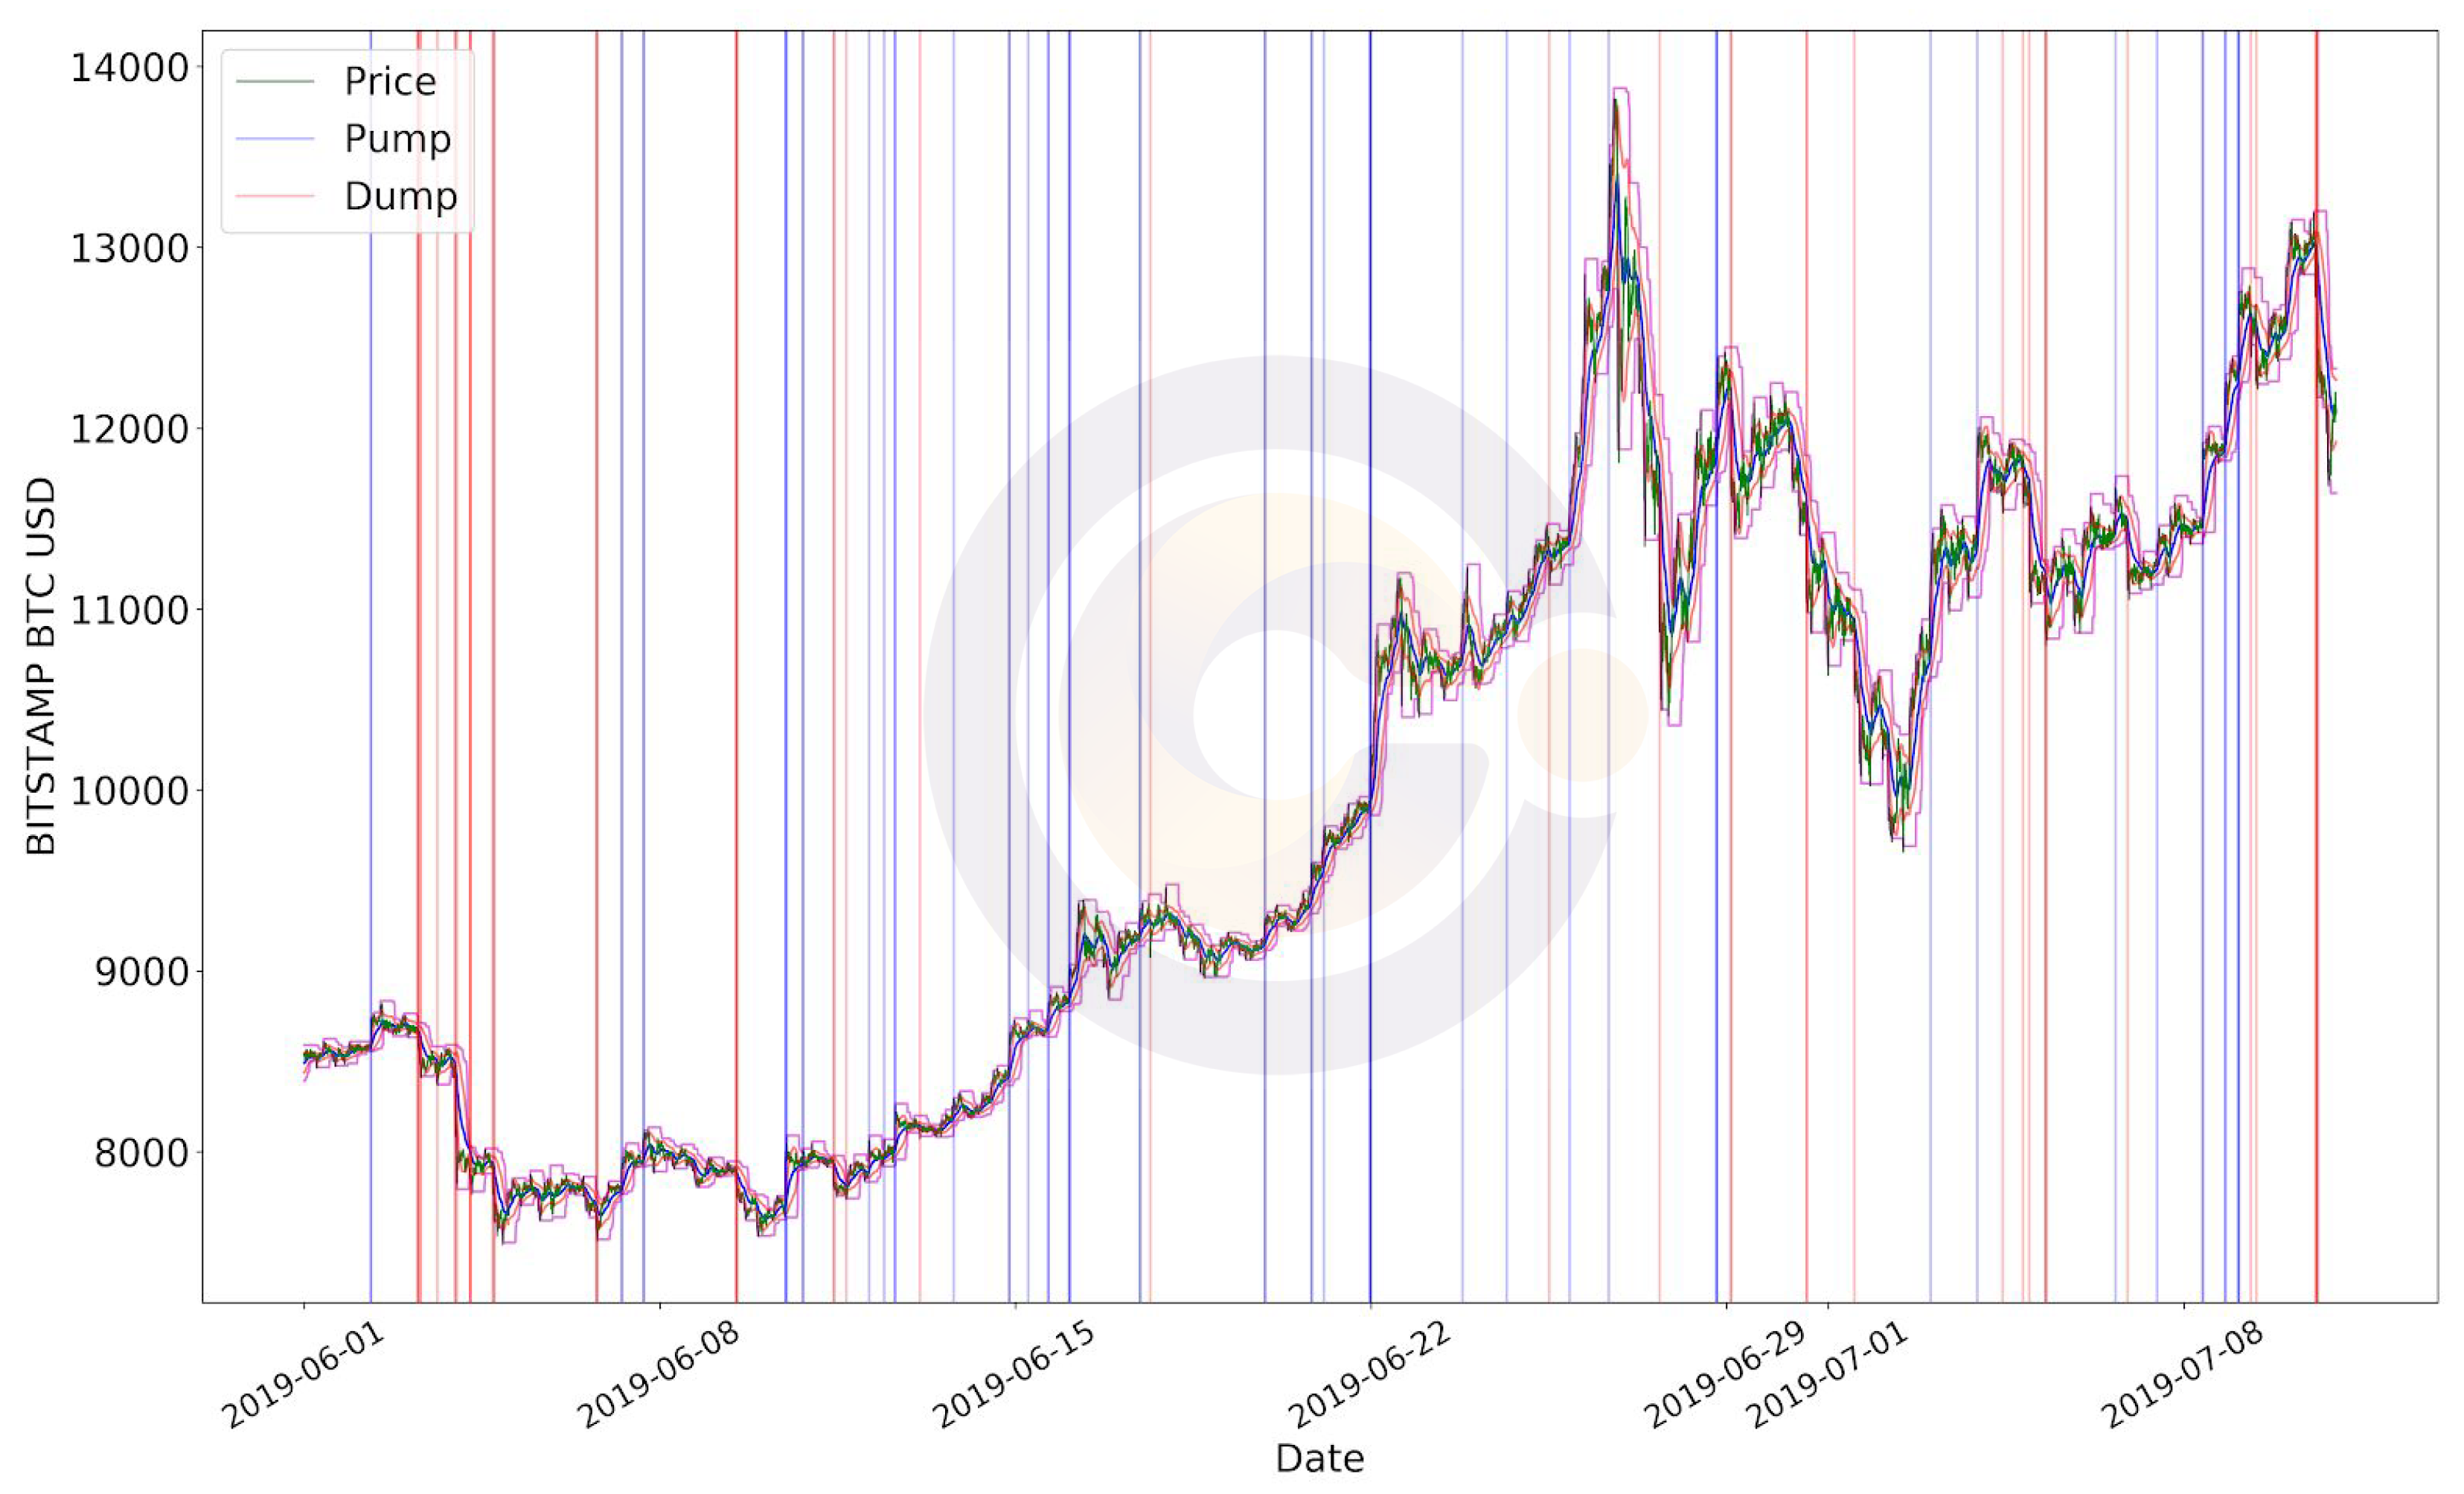 Blockchain - BTC/USD price pump and dump at Bitstamp between June 1 to 30, 2019.